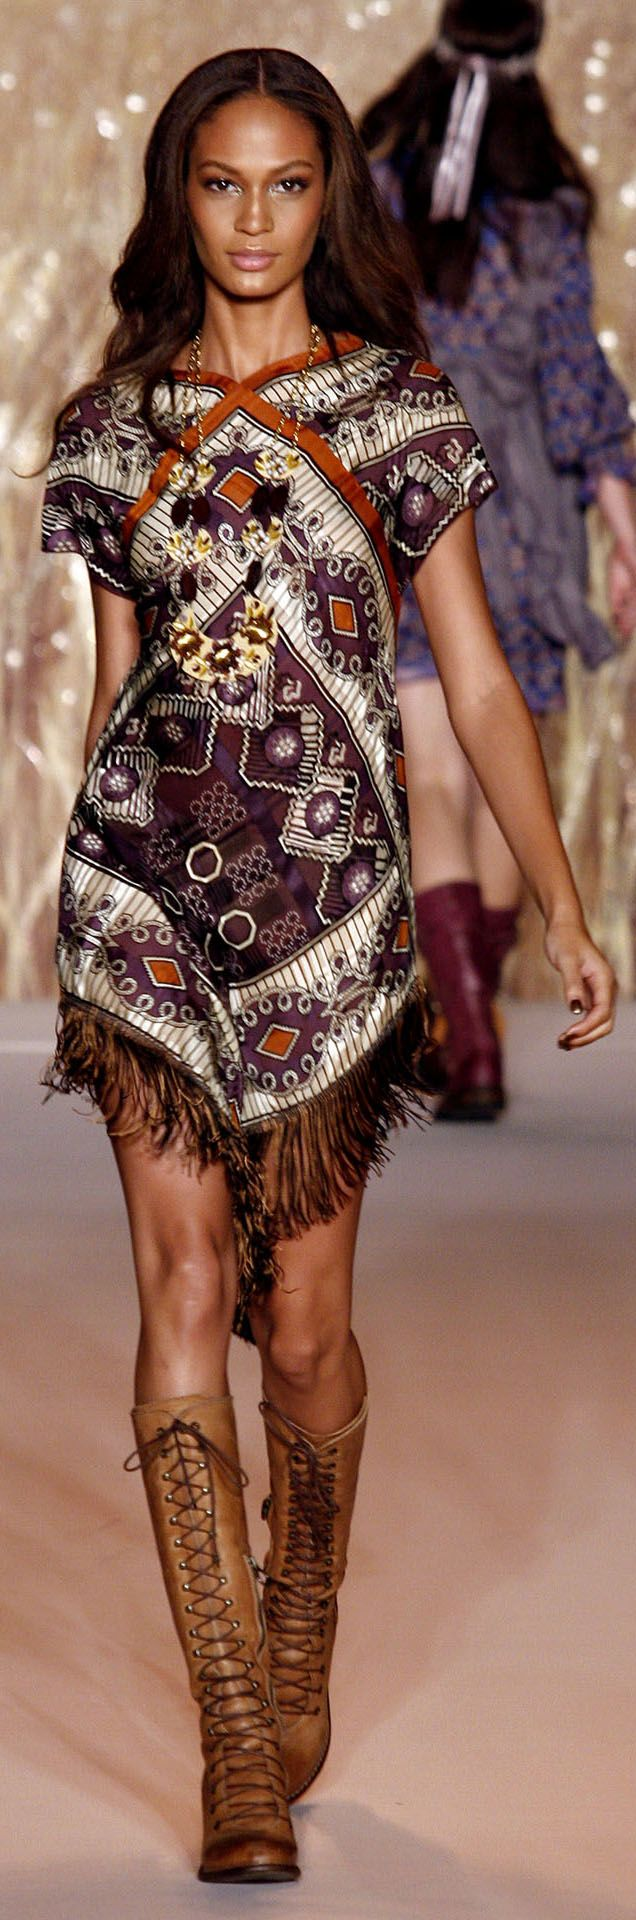 ✪ Native American Inspiration in Anna Sui Ready-To-Wear Spring/Summer 2011 ✪ http://www.vogue.co.uk/fashion/spring-summer-2011/ready-to-wear/anna-sui/full-length-photos# ♡ ℒℴѵℯ ♡ the Boots